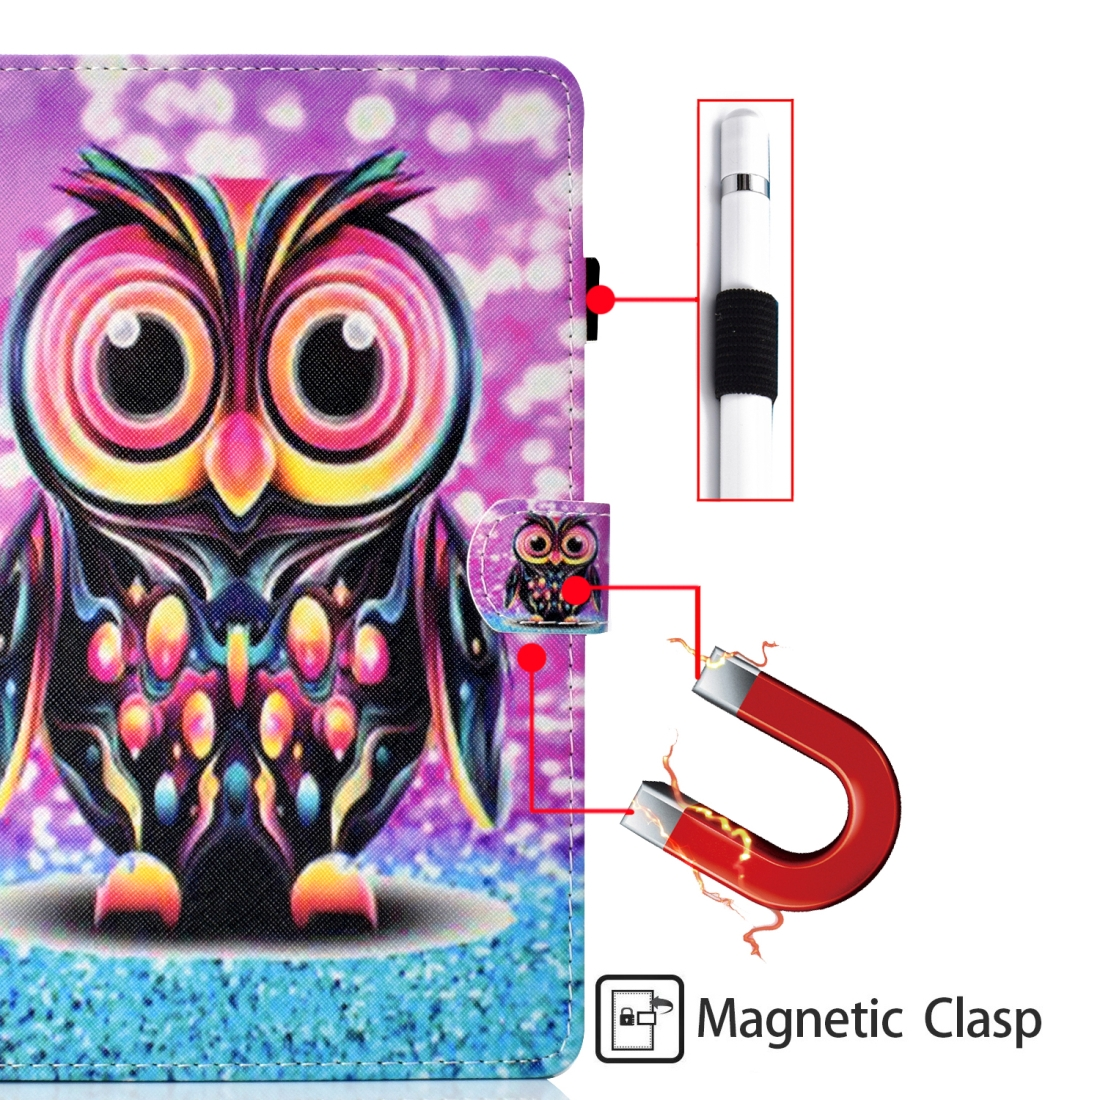 Sewing Thread Left and Right Flat Leather Case with Pen Cover & Card Slot & Buckle Anti-skid Strip and Bracket (Owl)